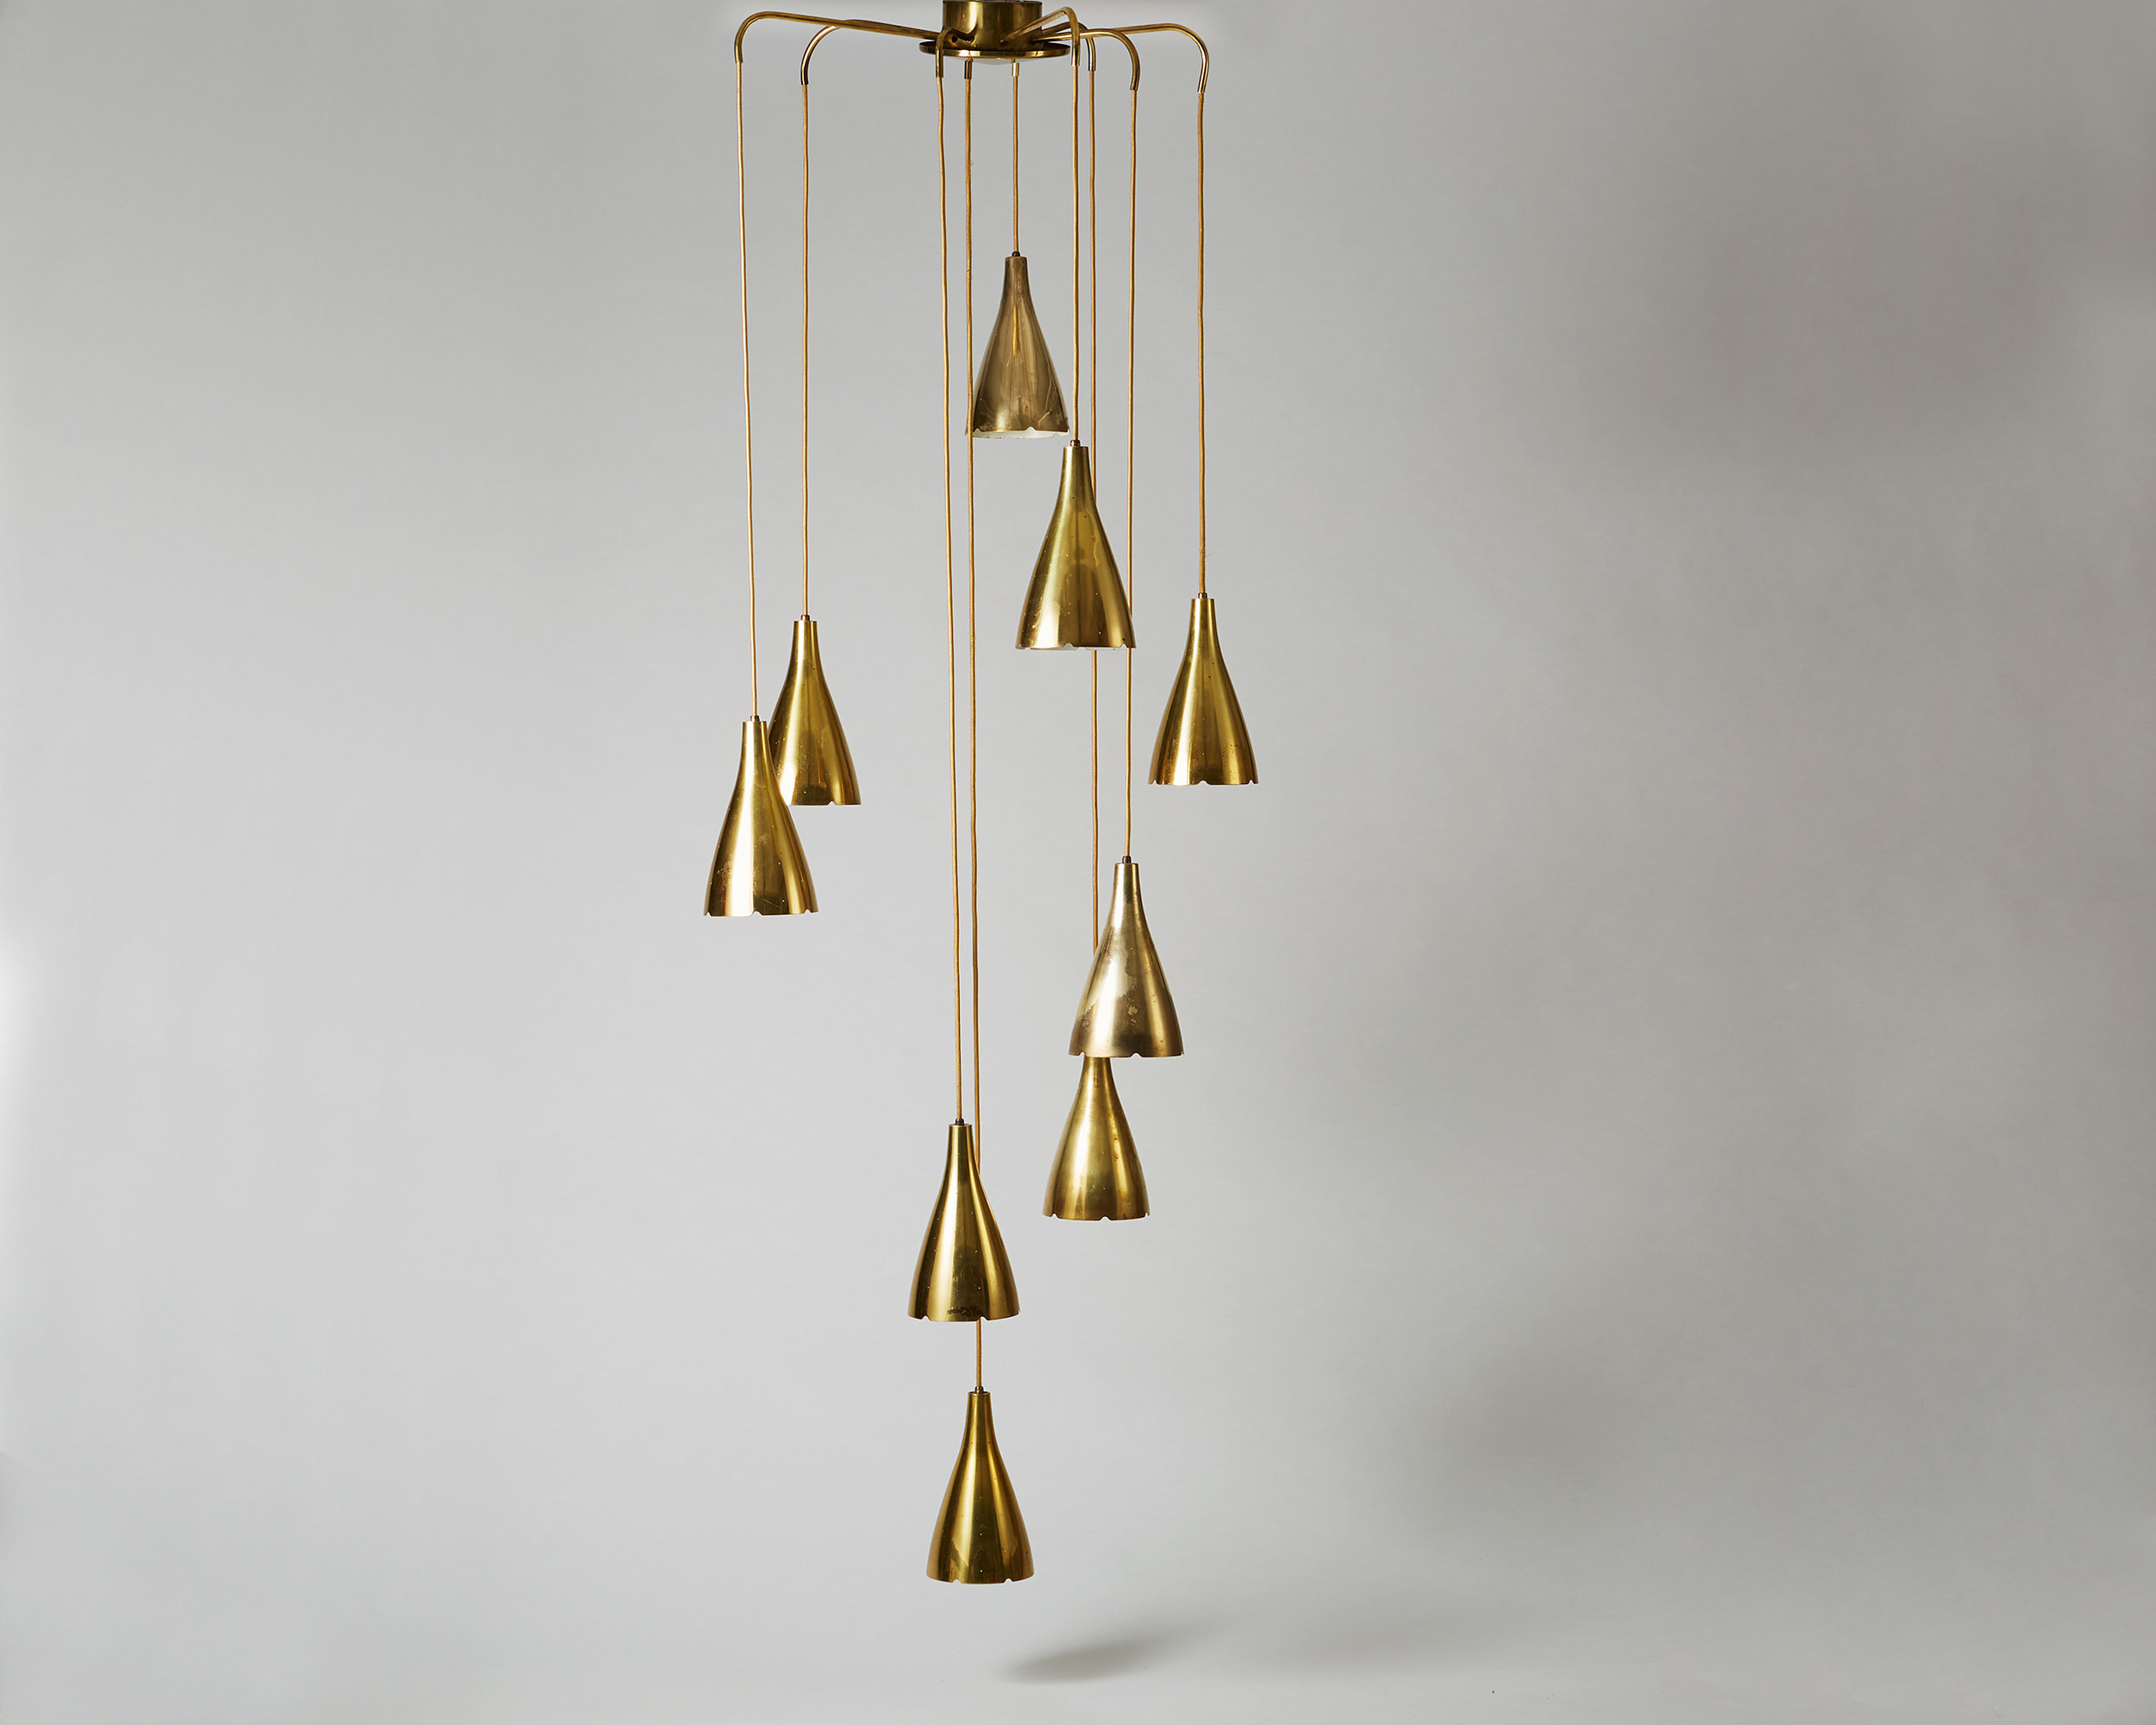 Paavo Tynell  Ceiling lamp, model 1994/9 Finland. 1950's Brass.  Total fixture: 217 x 78 cm  Each Lampshade: 26 x 15 cm